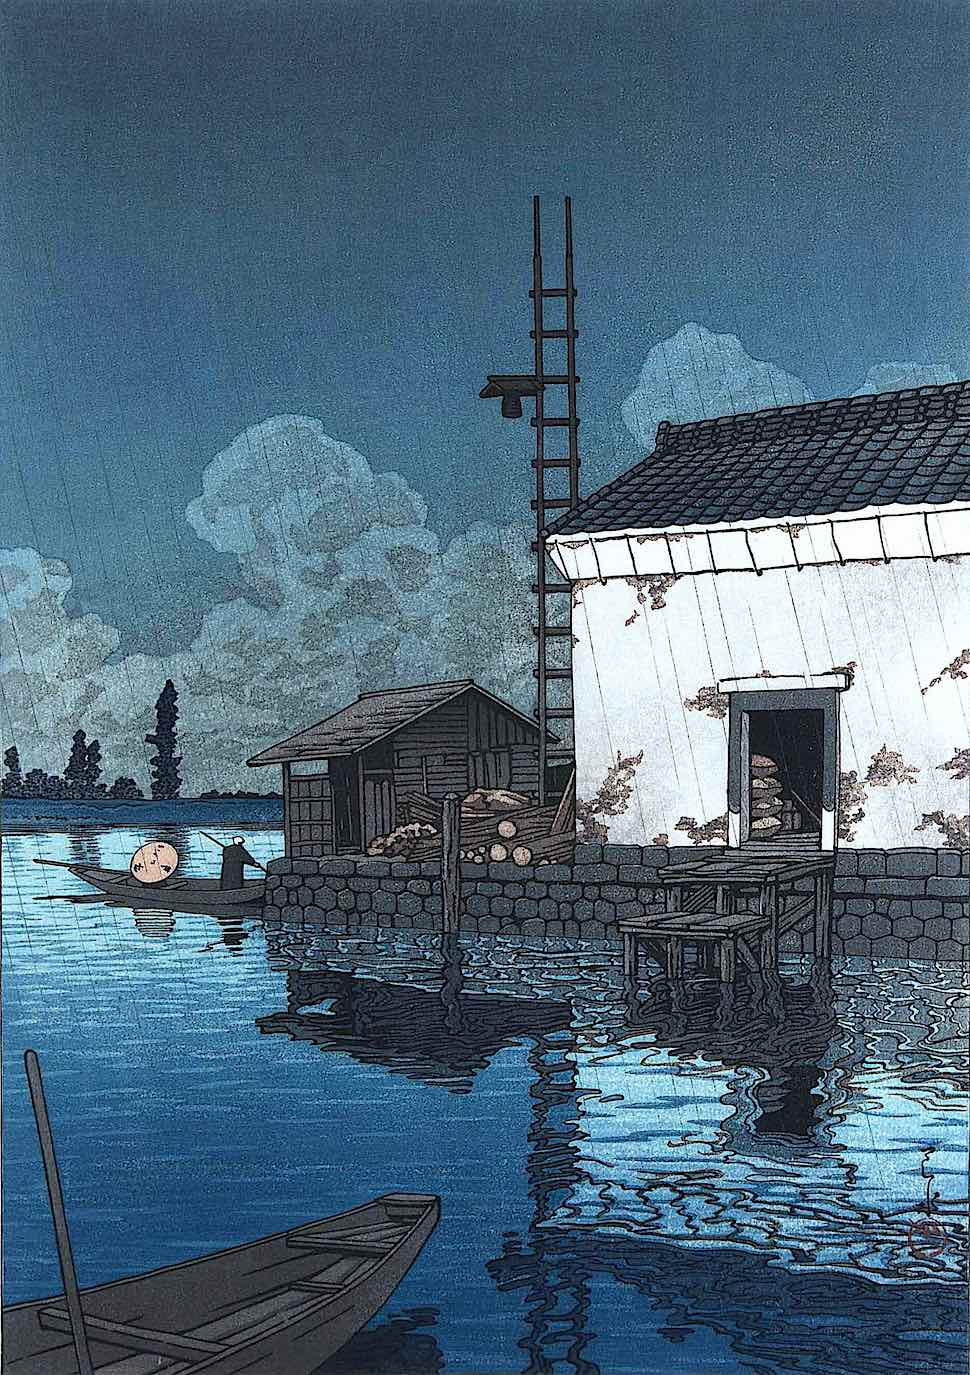 a Kawase Hasui print of a waterfront dock in the rain, in blue